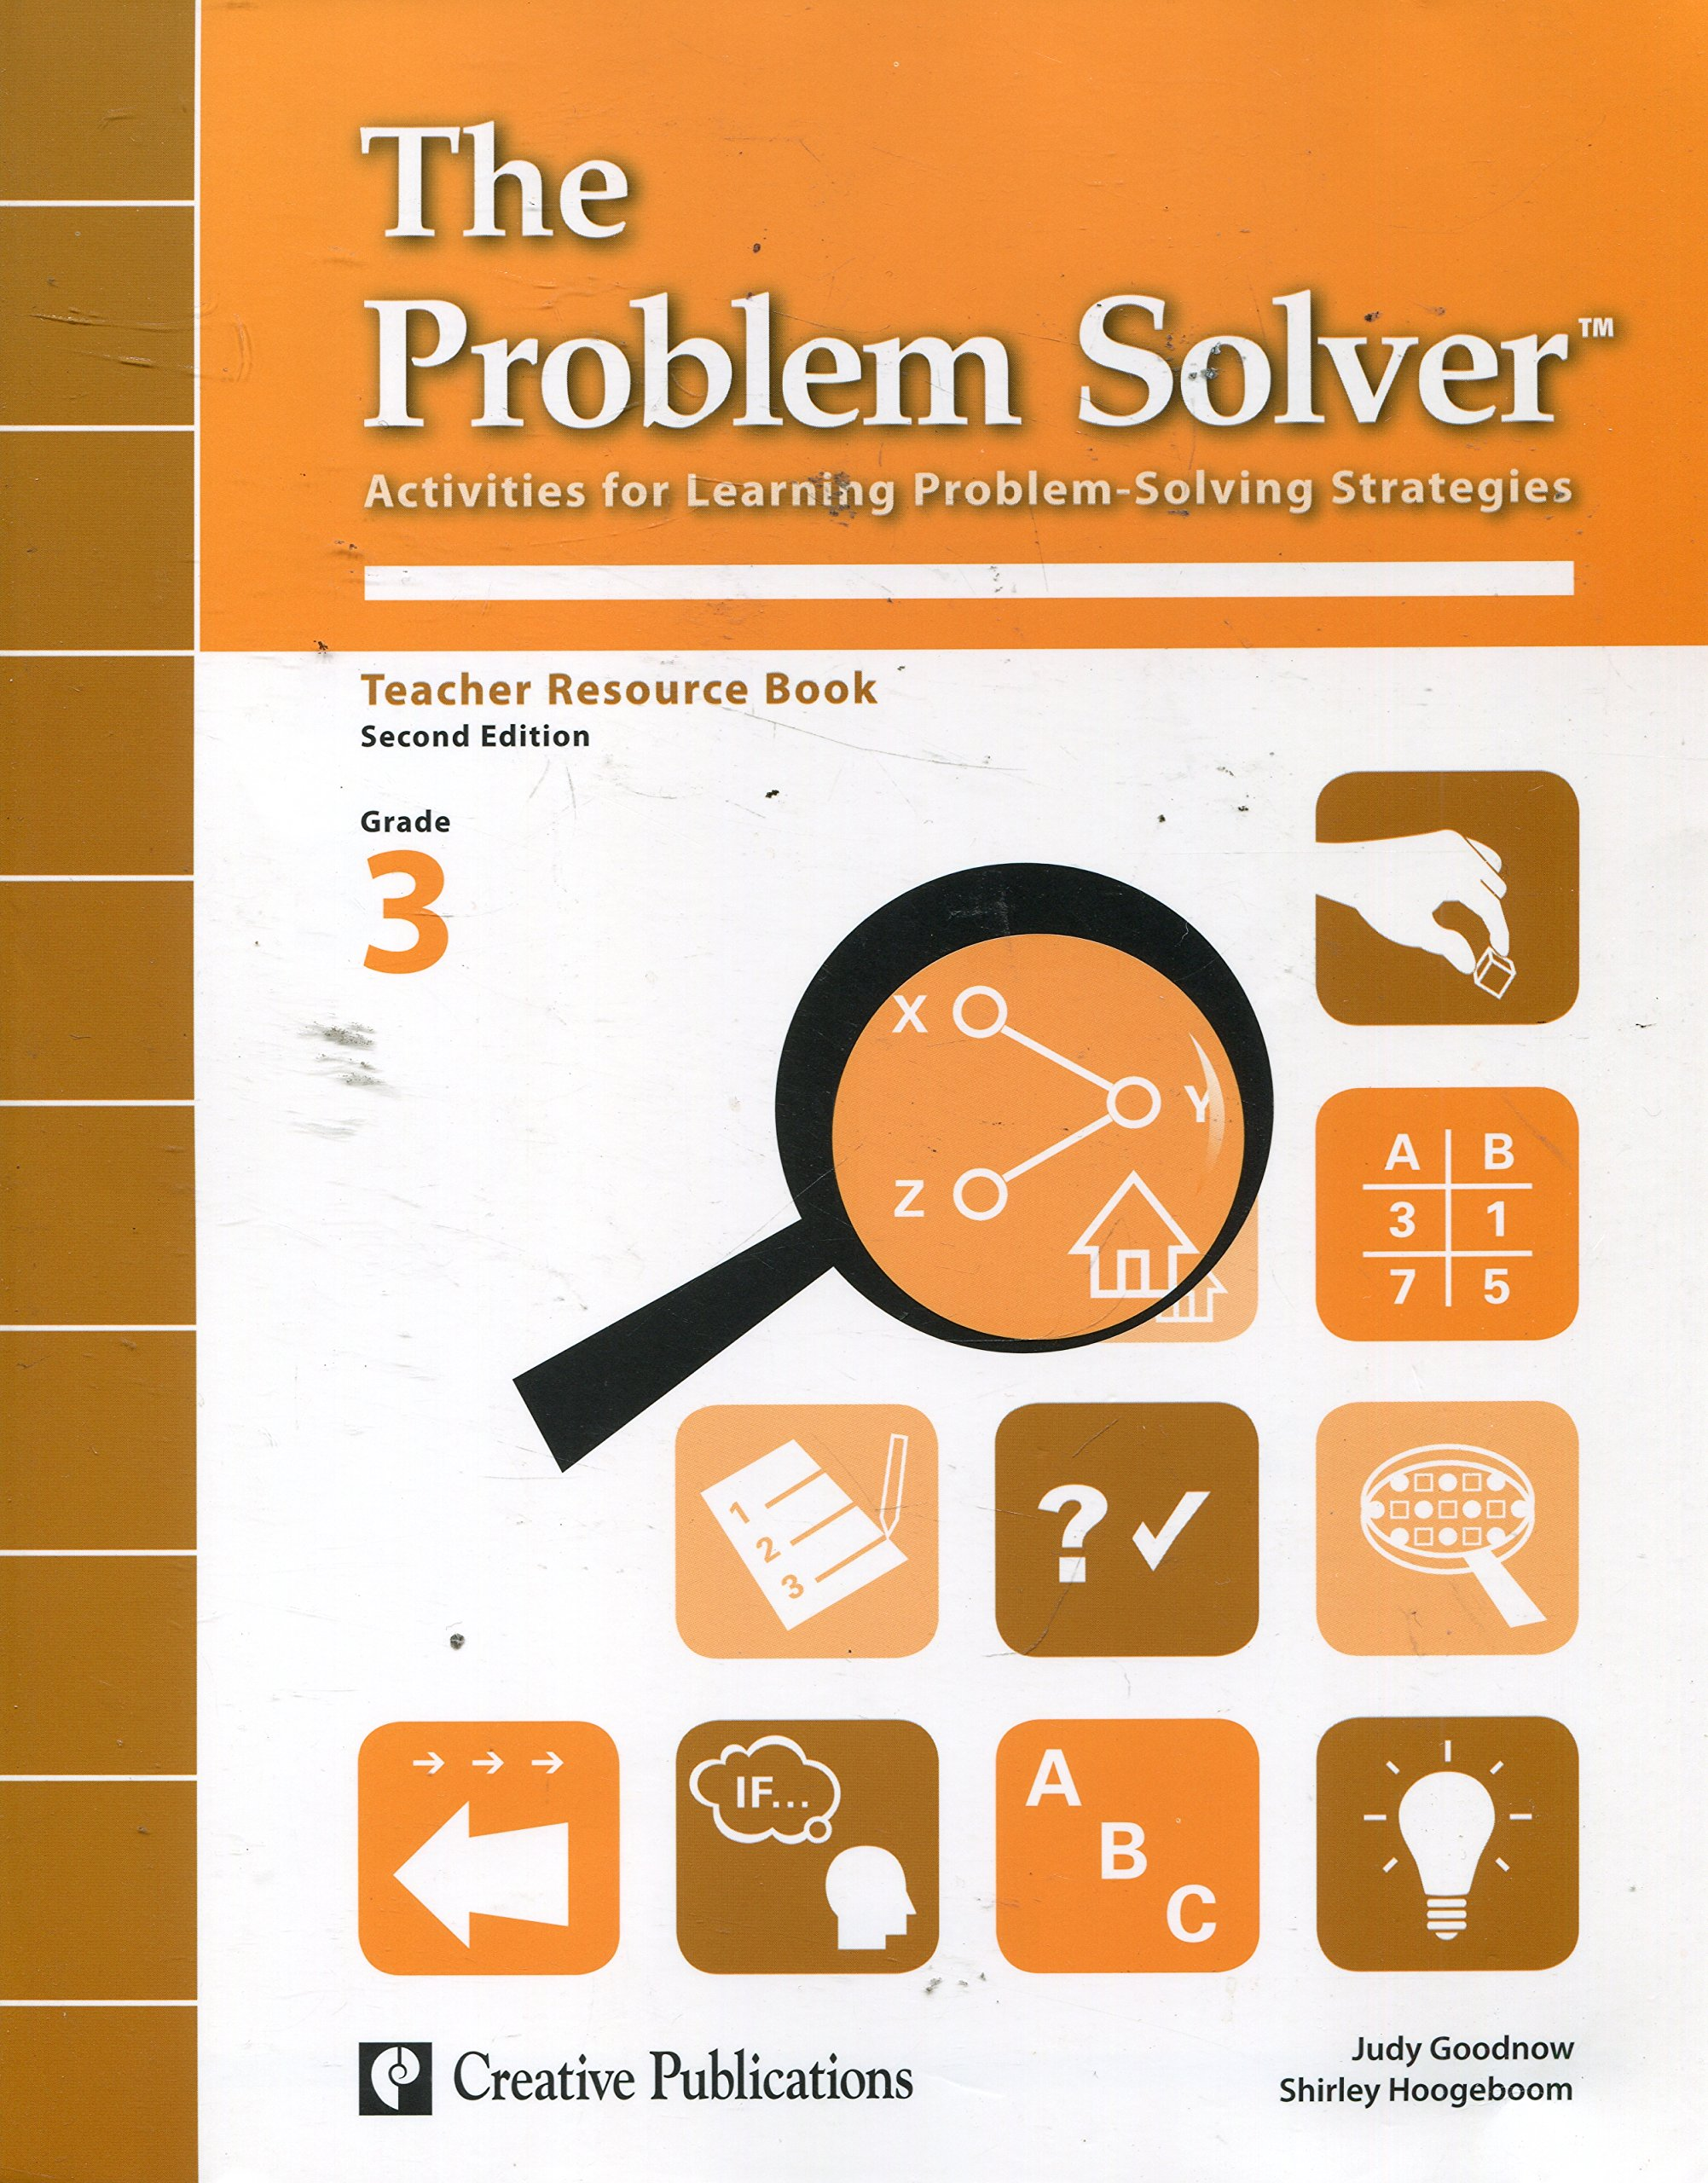 The Problem Solver: Activities for Learning Problem-Solving Strategies, Teacher Resource Book Grade 3 PDF